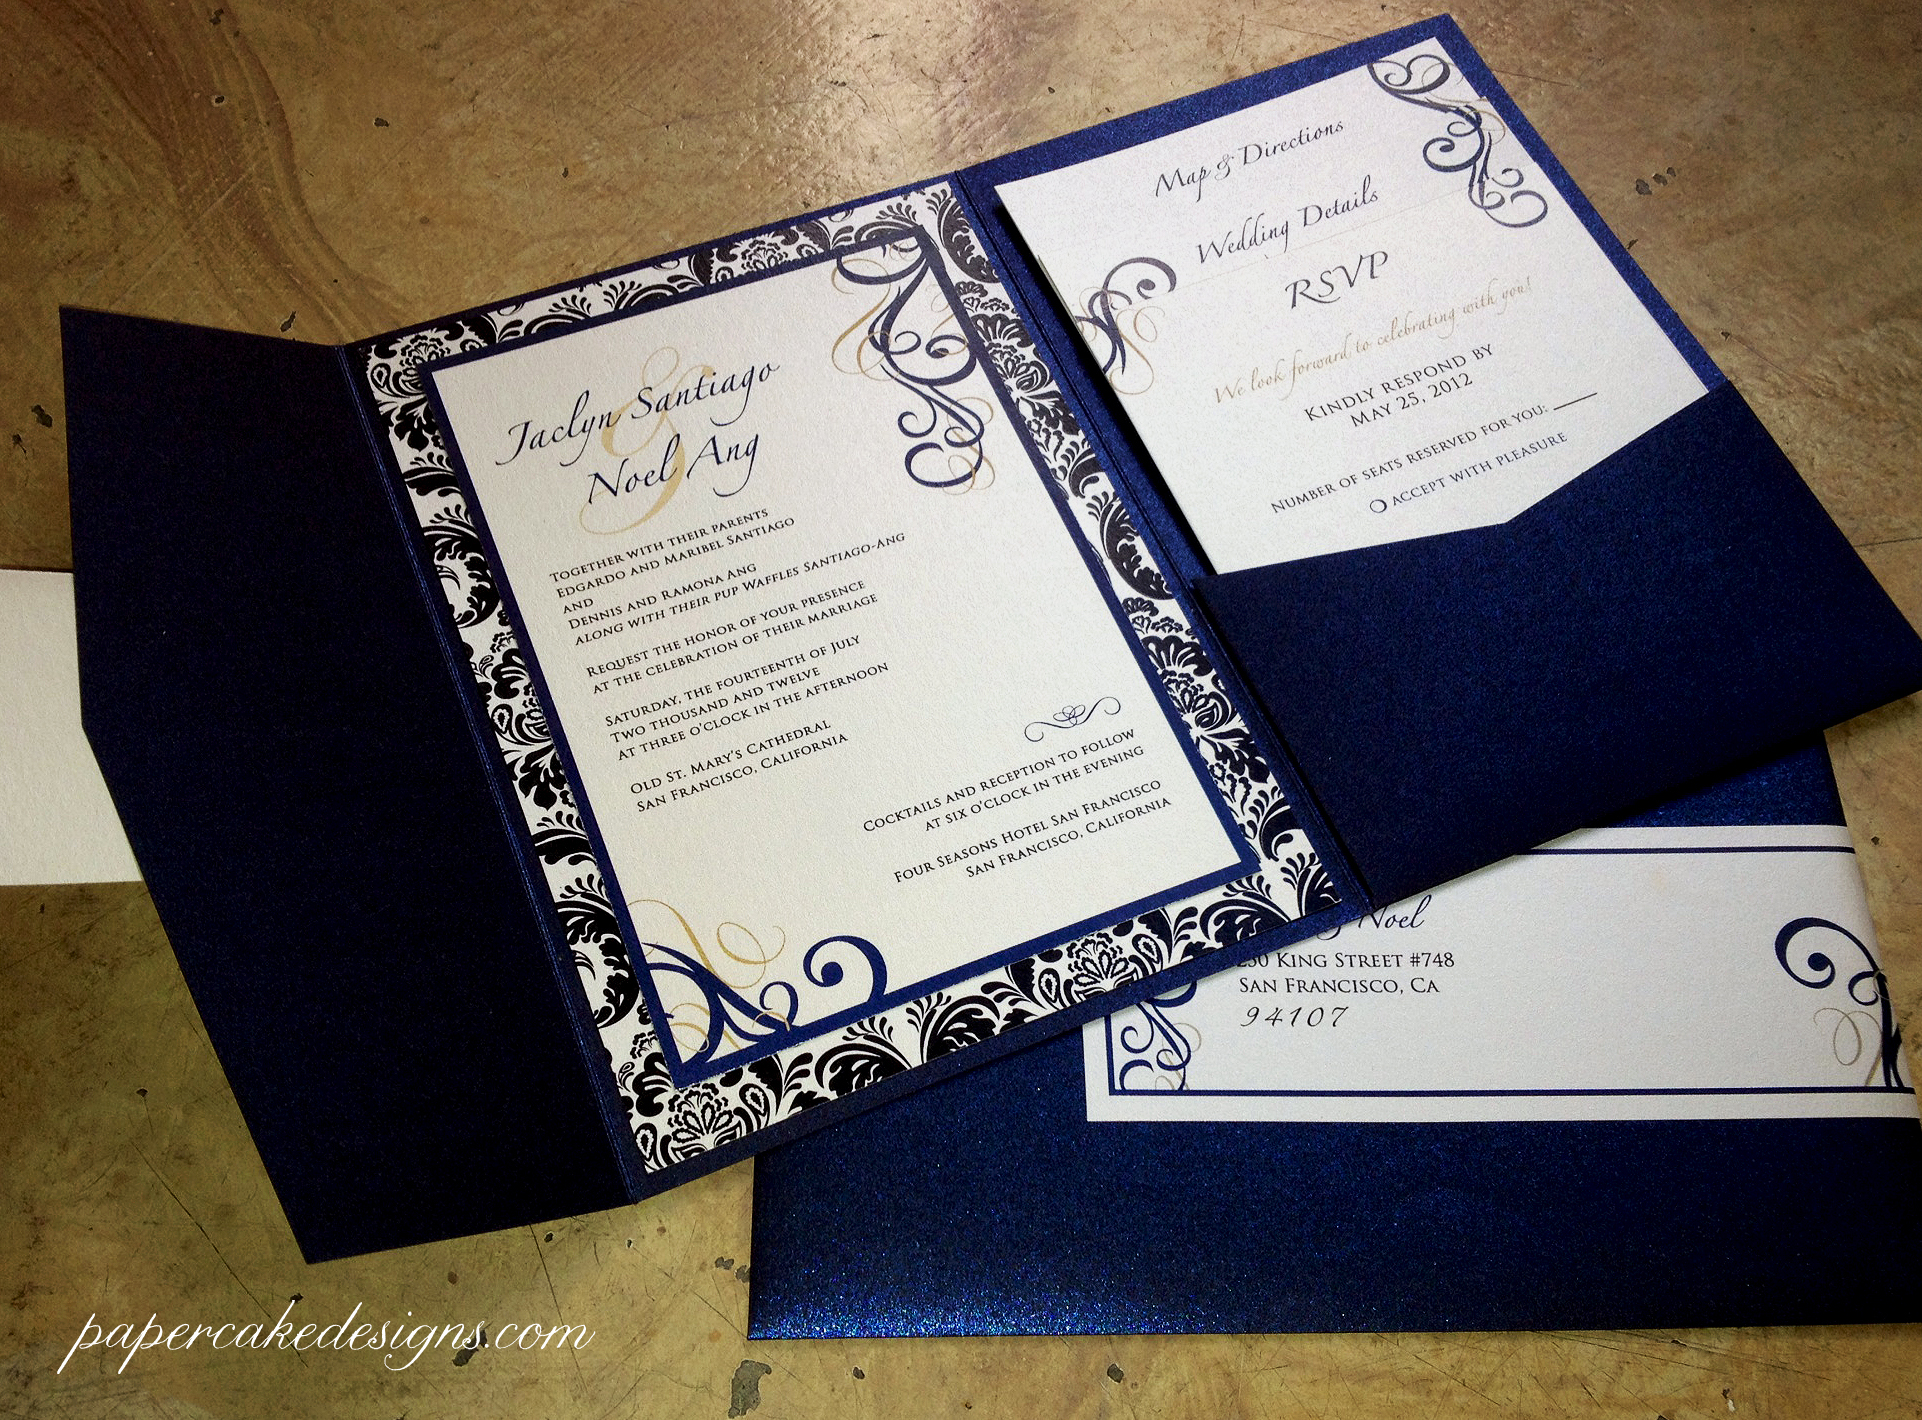 Invitation Cards For Wedding: [DIY Print & Assemble] Wedding Invitations